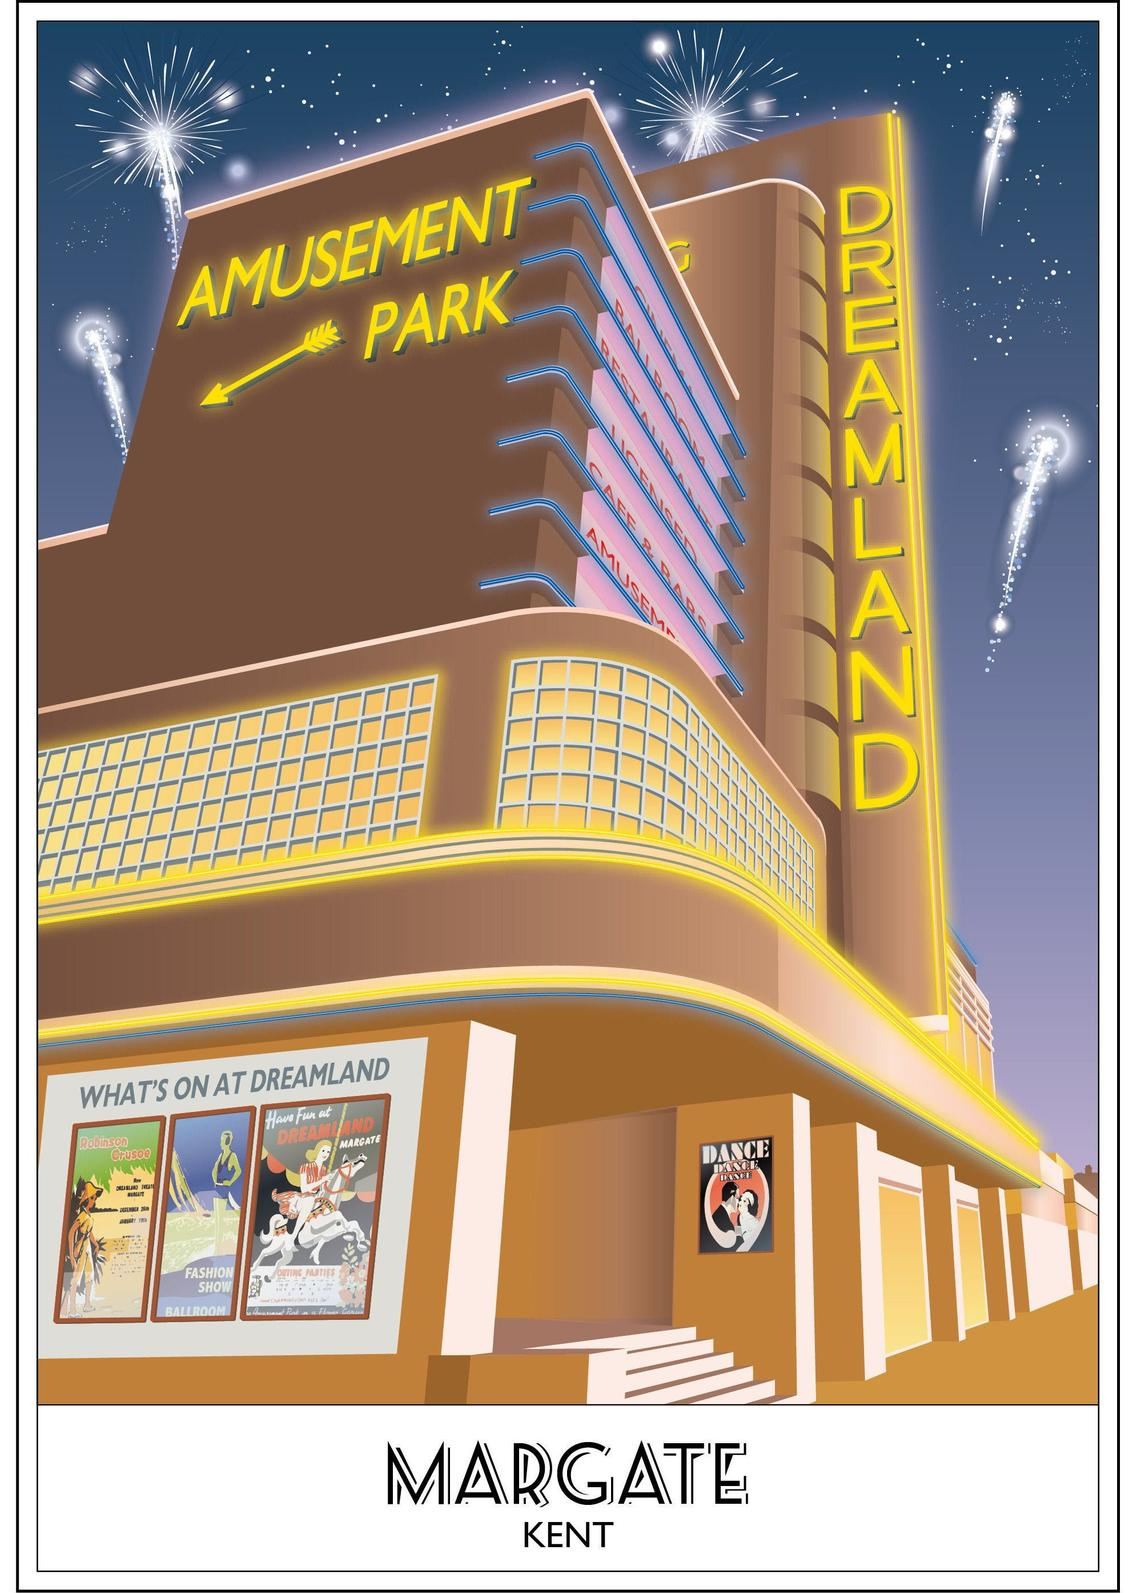 Dreamland, Margate, Fireworks, Cinema, Amusements, Kent